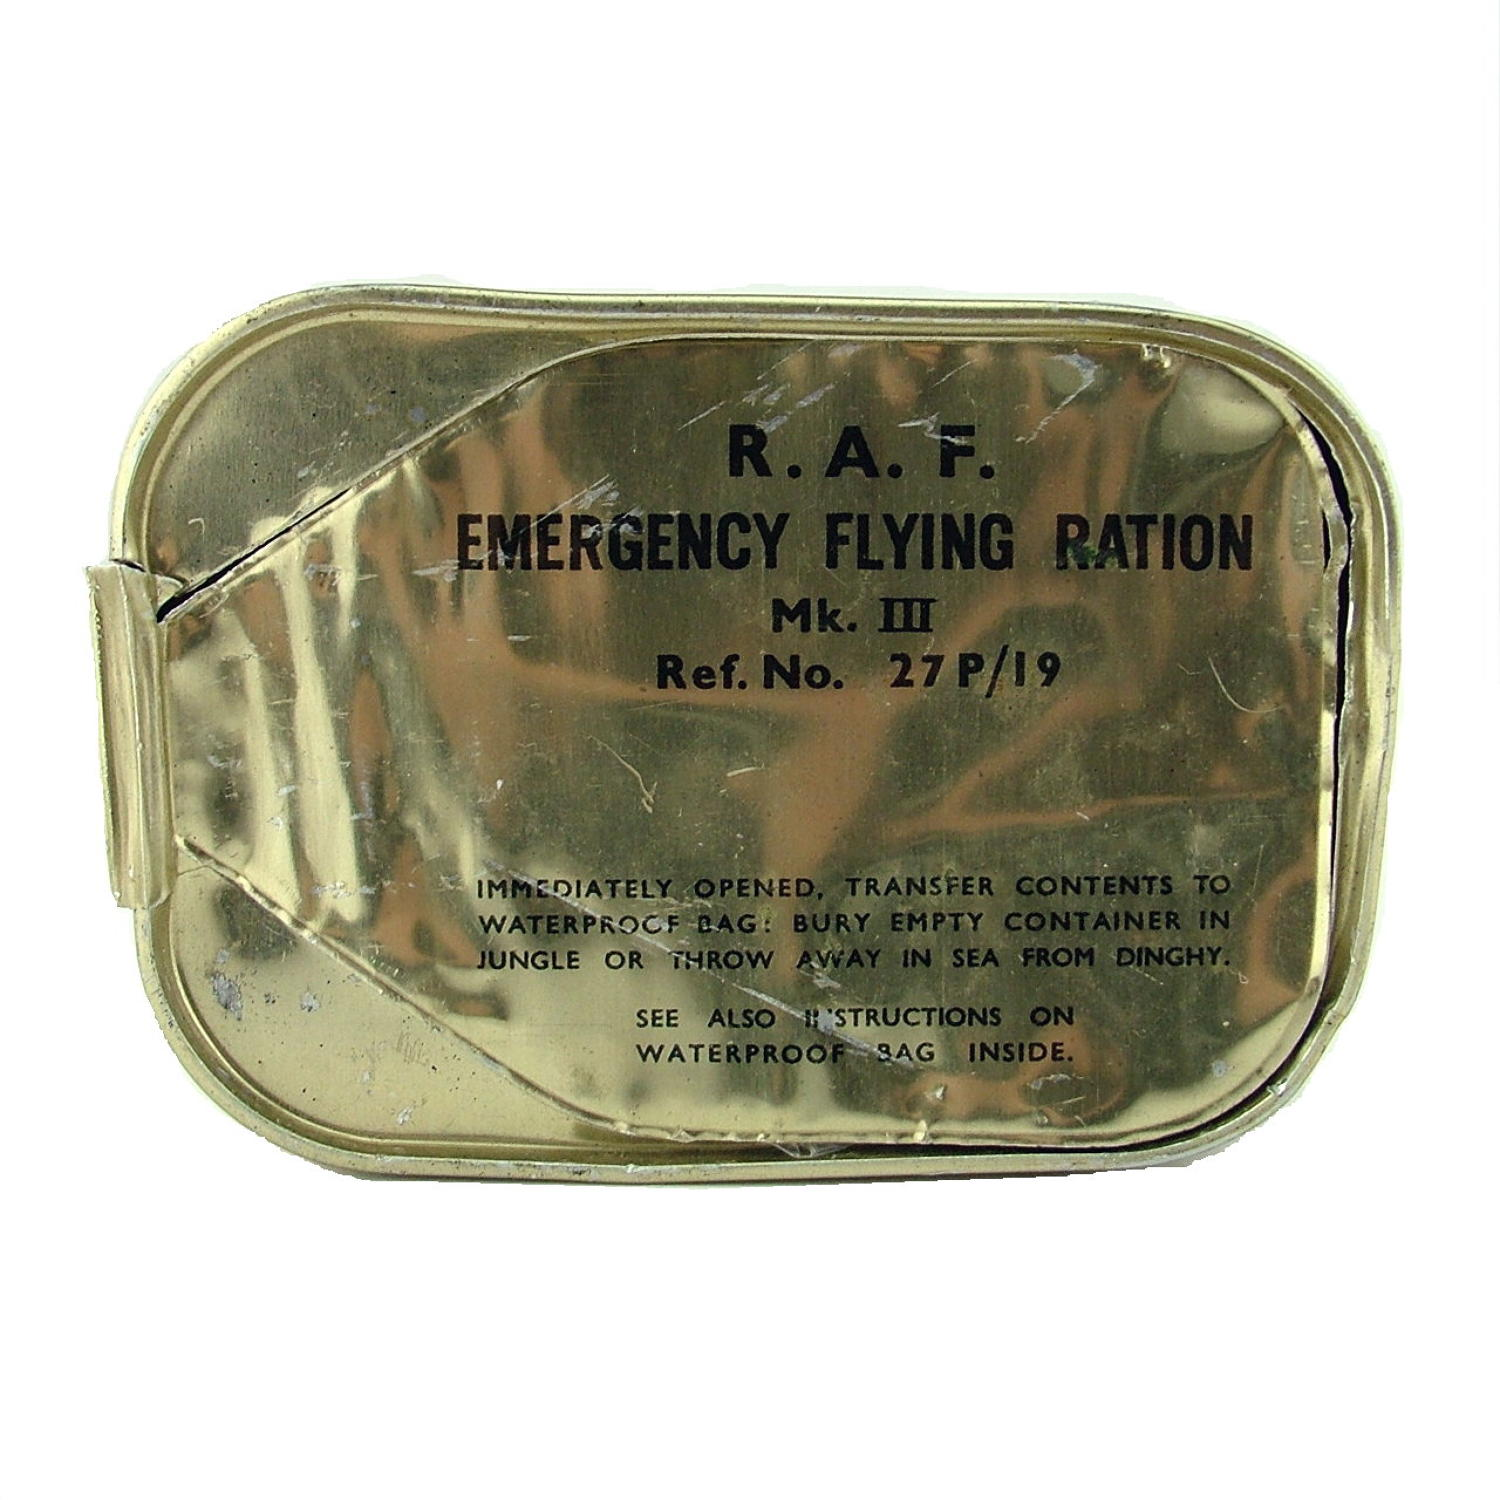 RAF Emergency flying ration, Mk.III